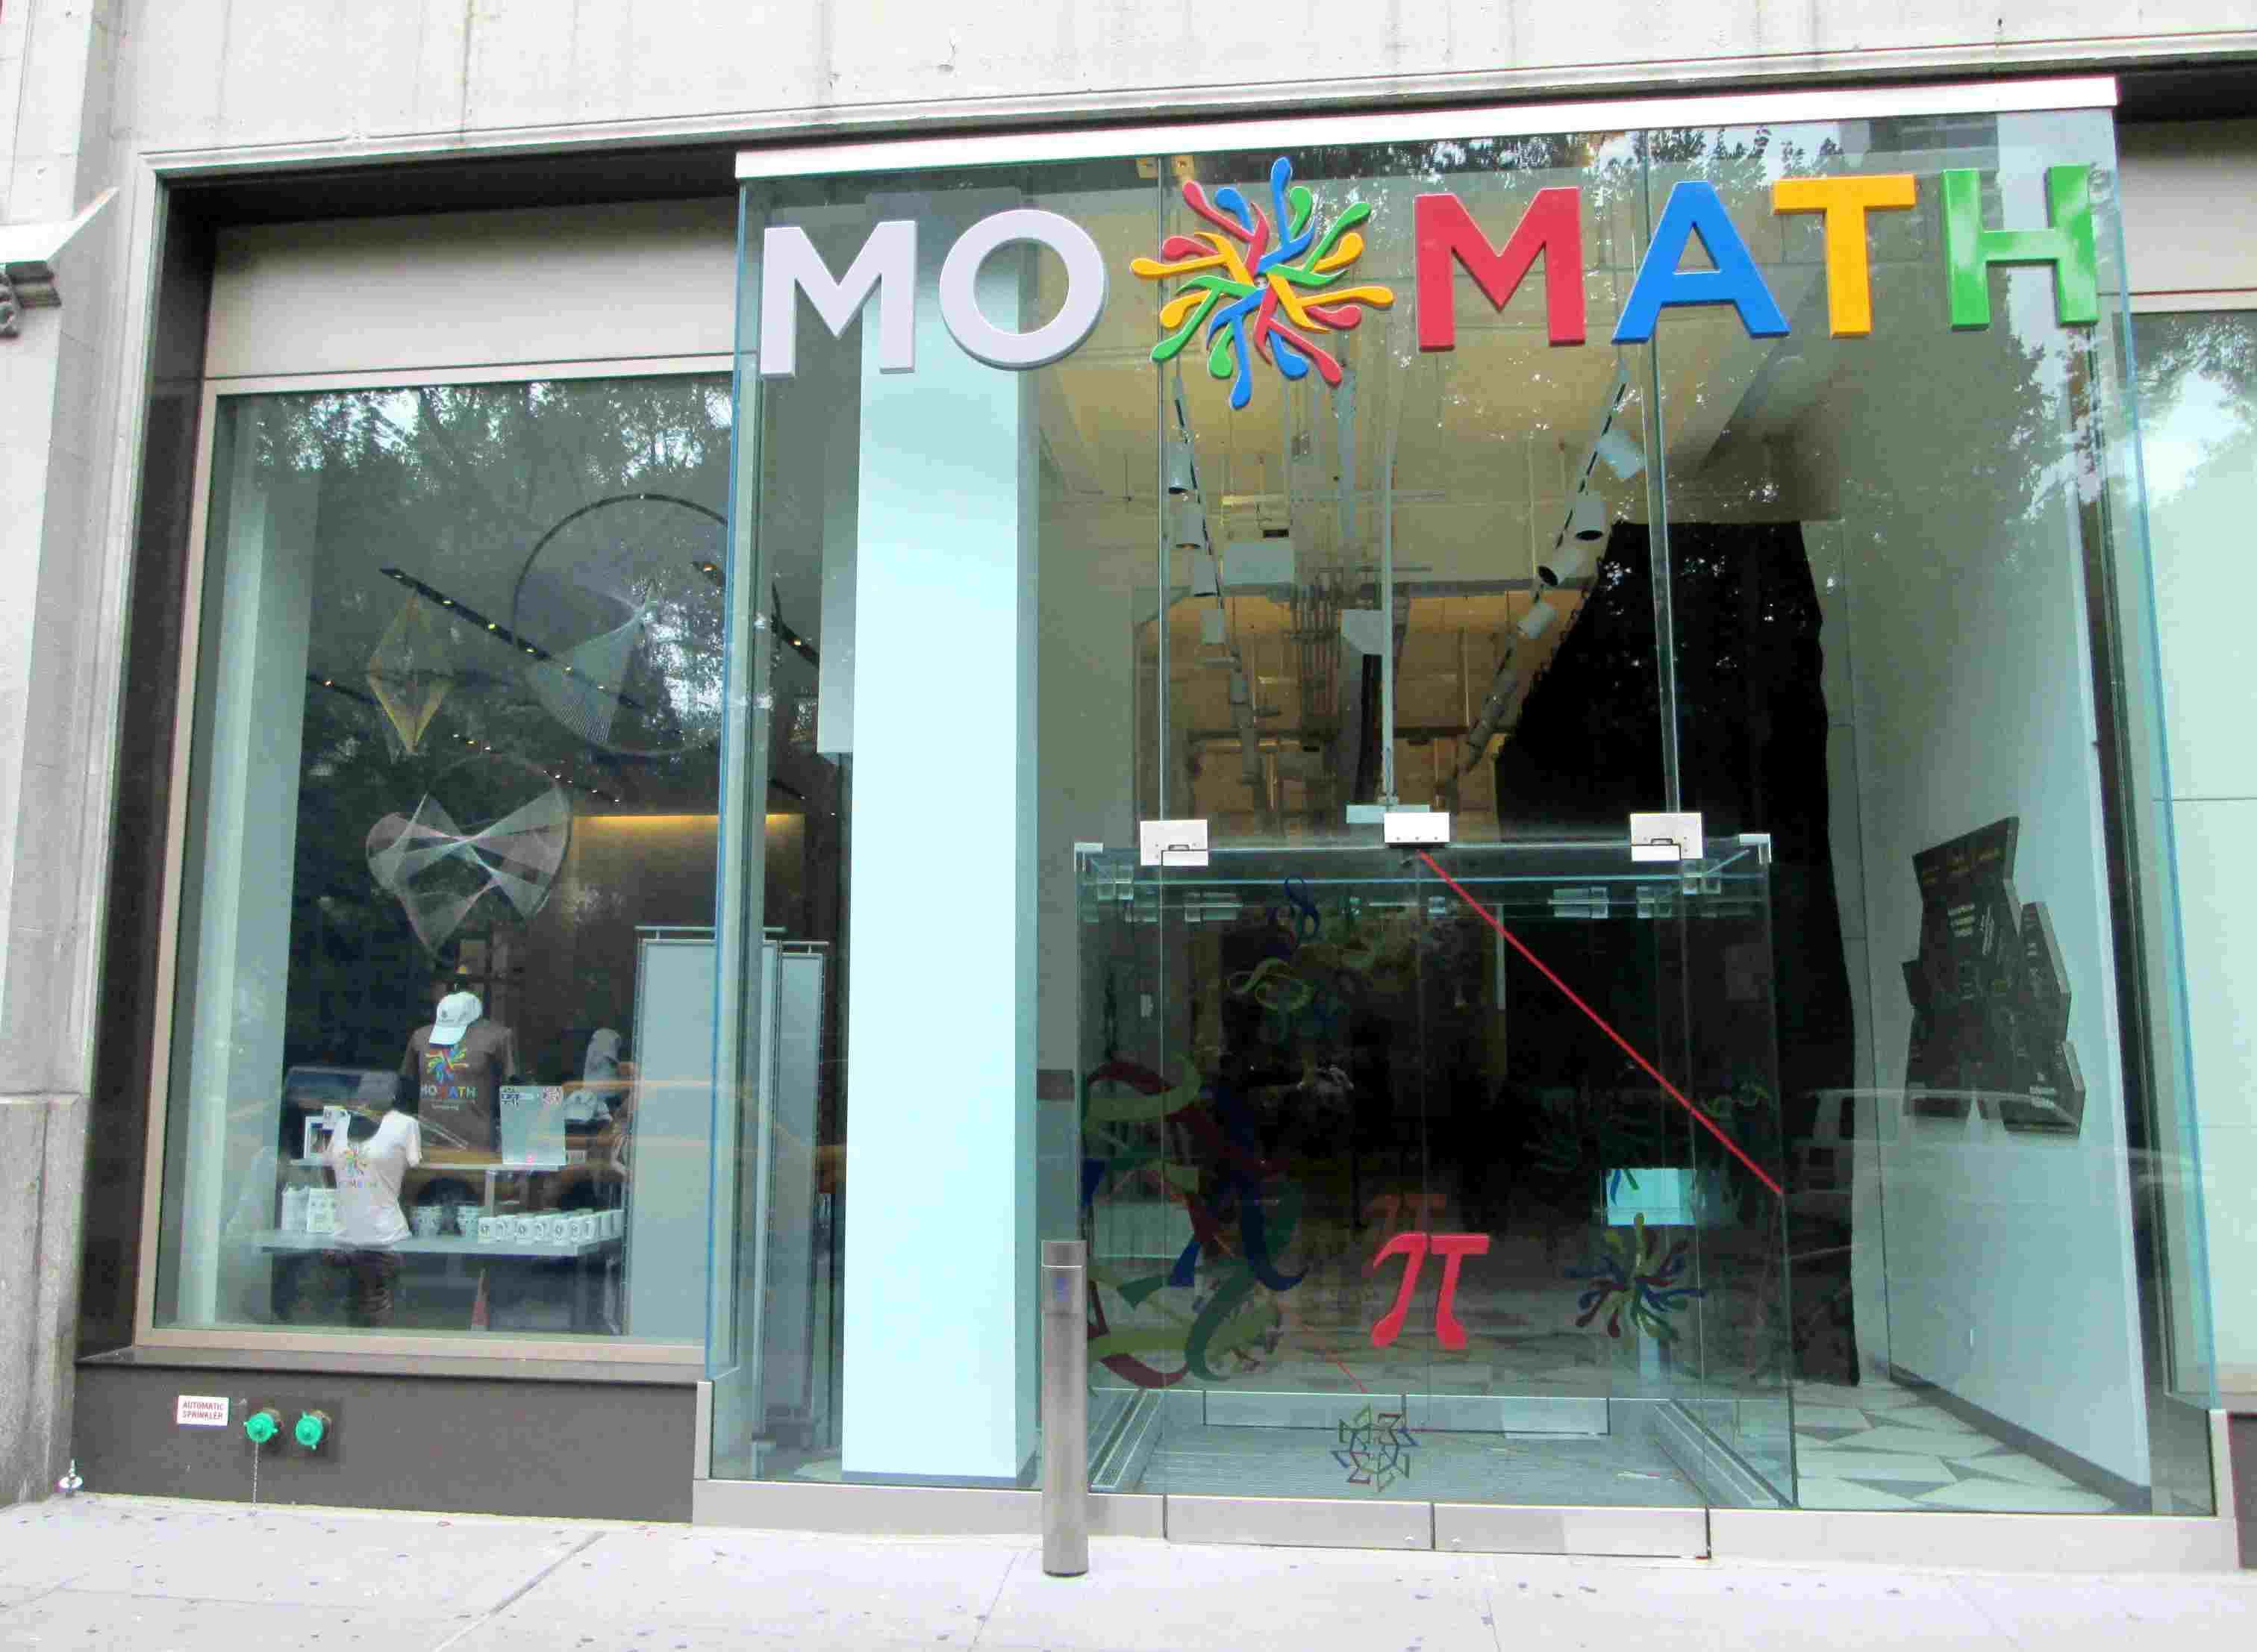 The National Museum of Mathematics (MoMath), at 11 East 26th Street between Fifth and Madison Avenues, across from Madison Square Park in the NoMad neighborhood of Manhattan, New York City, was chartered in 2009 and opened its doors in 2012. It is the only museum in North America dedicated solely to mathematics.